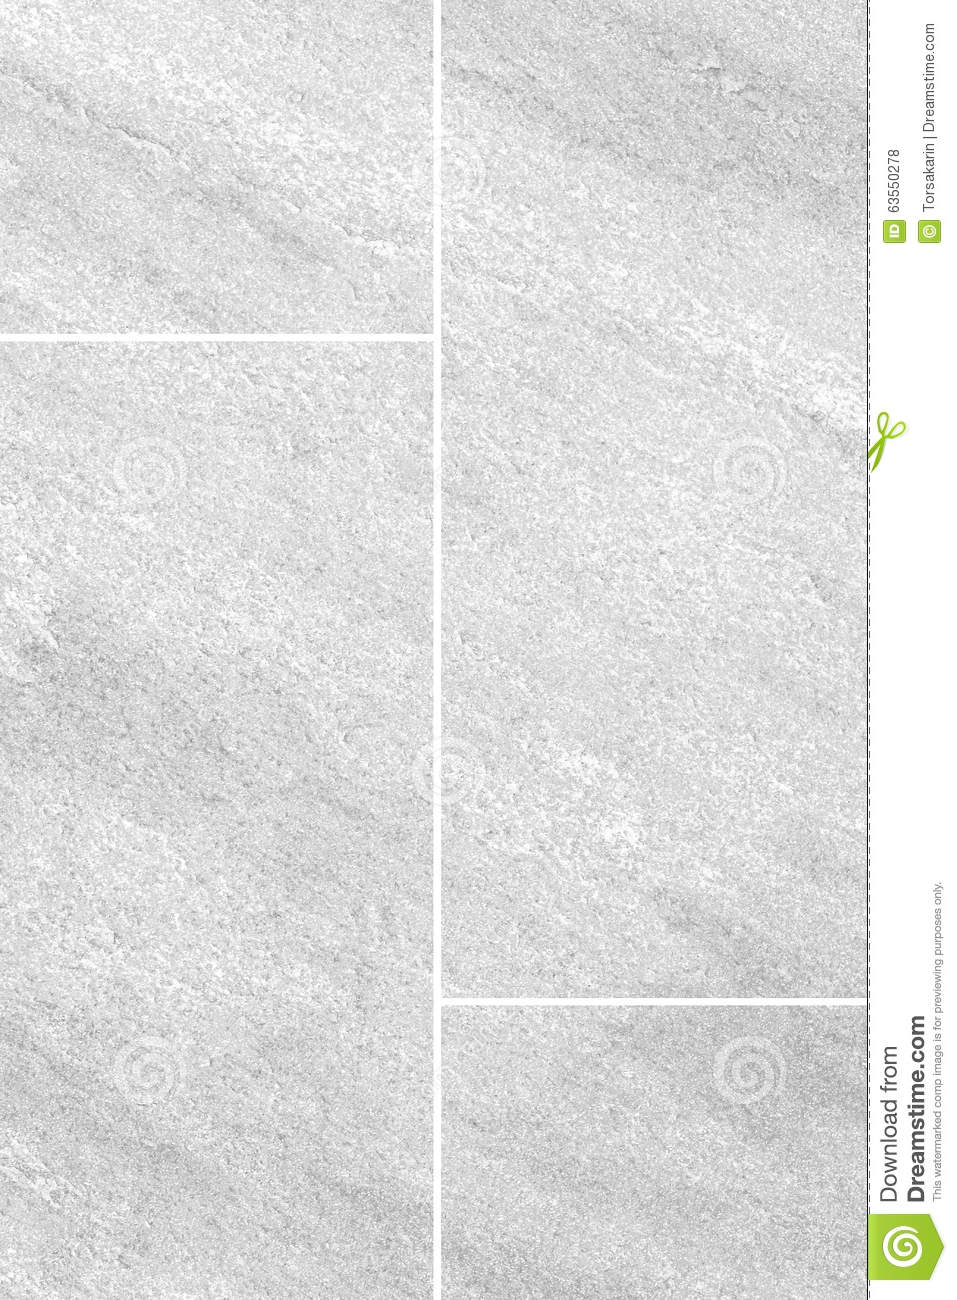 Seamless Background Of White Granite Stone Floor